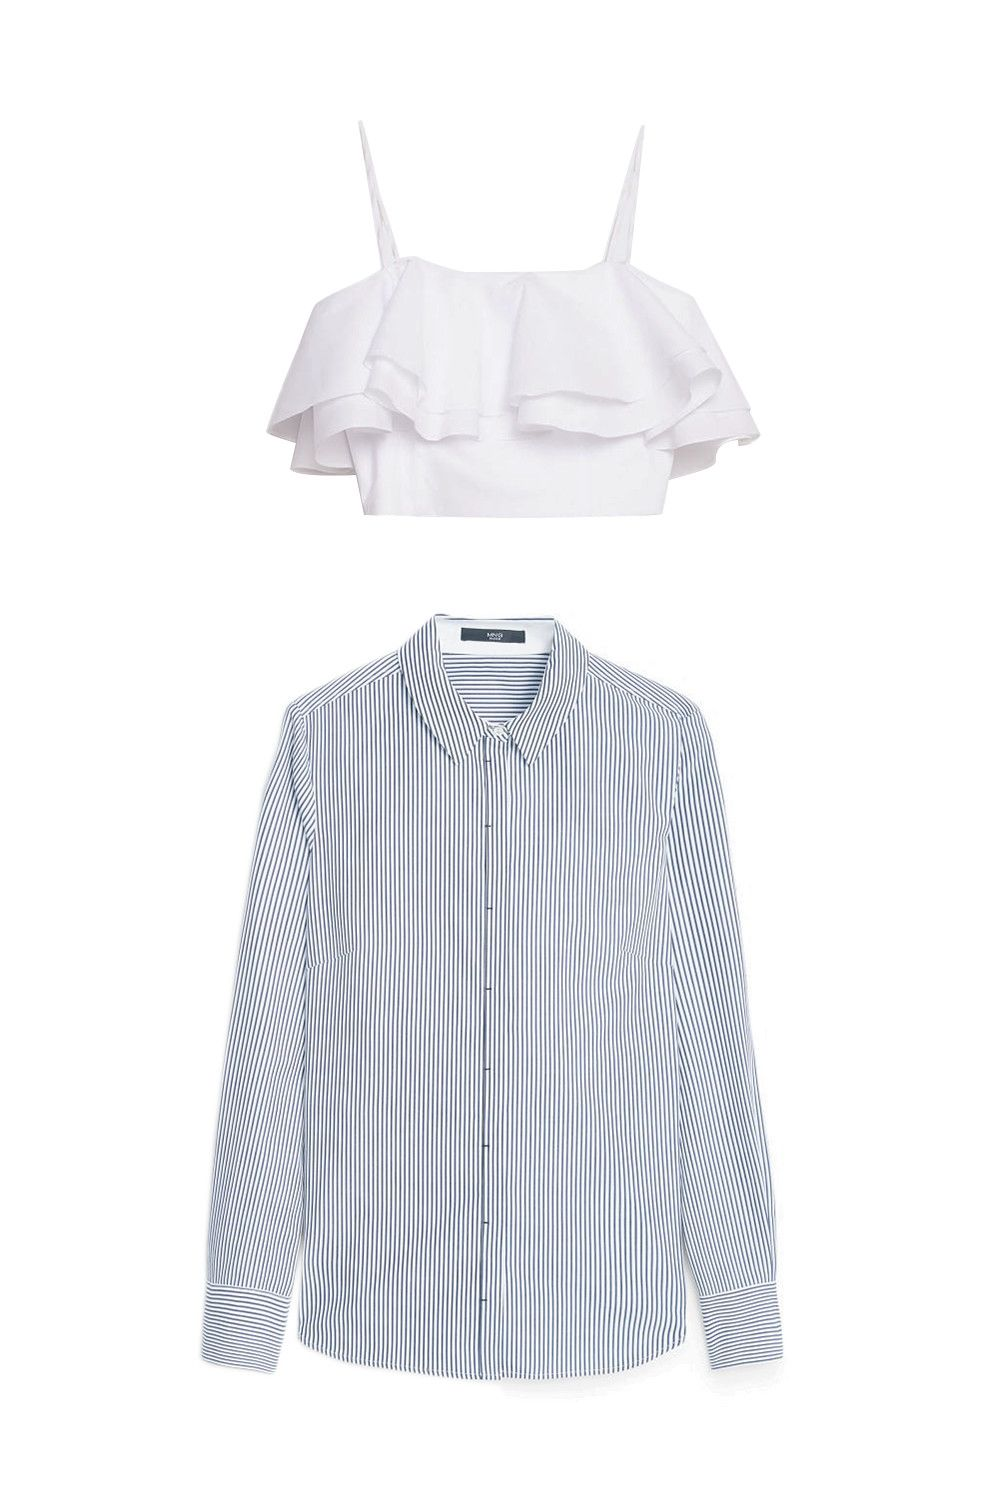 "<p>You get a cool blouson effect with the shirt ends poufing out from below the relatively tight bustier. (Yes, you layer the bustier over the blouse.) Plus ""winter body"" and ""cropped bustier"" are two words you usually don't see together. </p><p>Zara ruffle bustier, $50, <a href=""http://www.zara.com/us/en/woman/tops/view-all/frilled-bustier-top-c719021p3219050.html"">zara.com</a>; Mango striped cotton shirt, $20, <a href=""http://bit.ly/1nHh5i2"">shop.mango.com</a>.</p>"